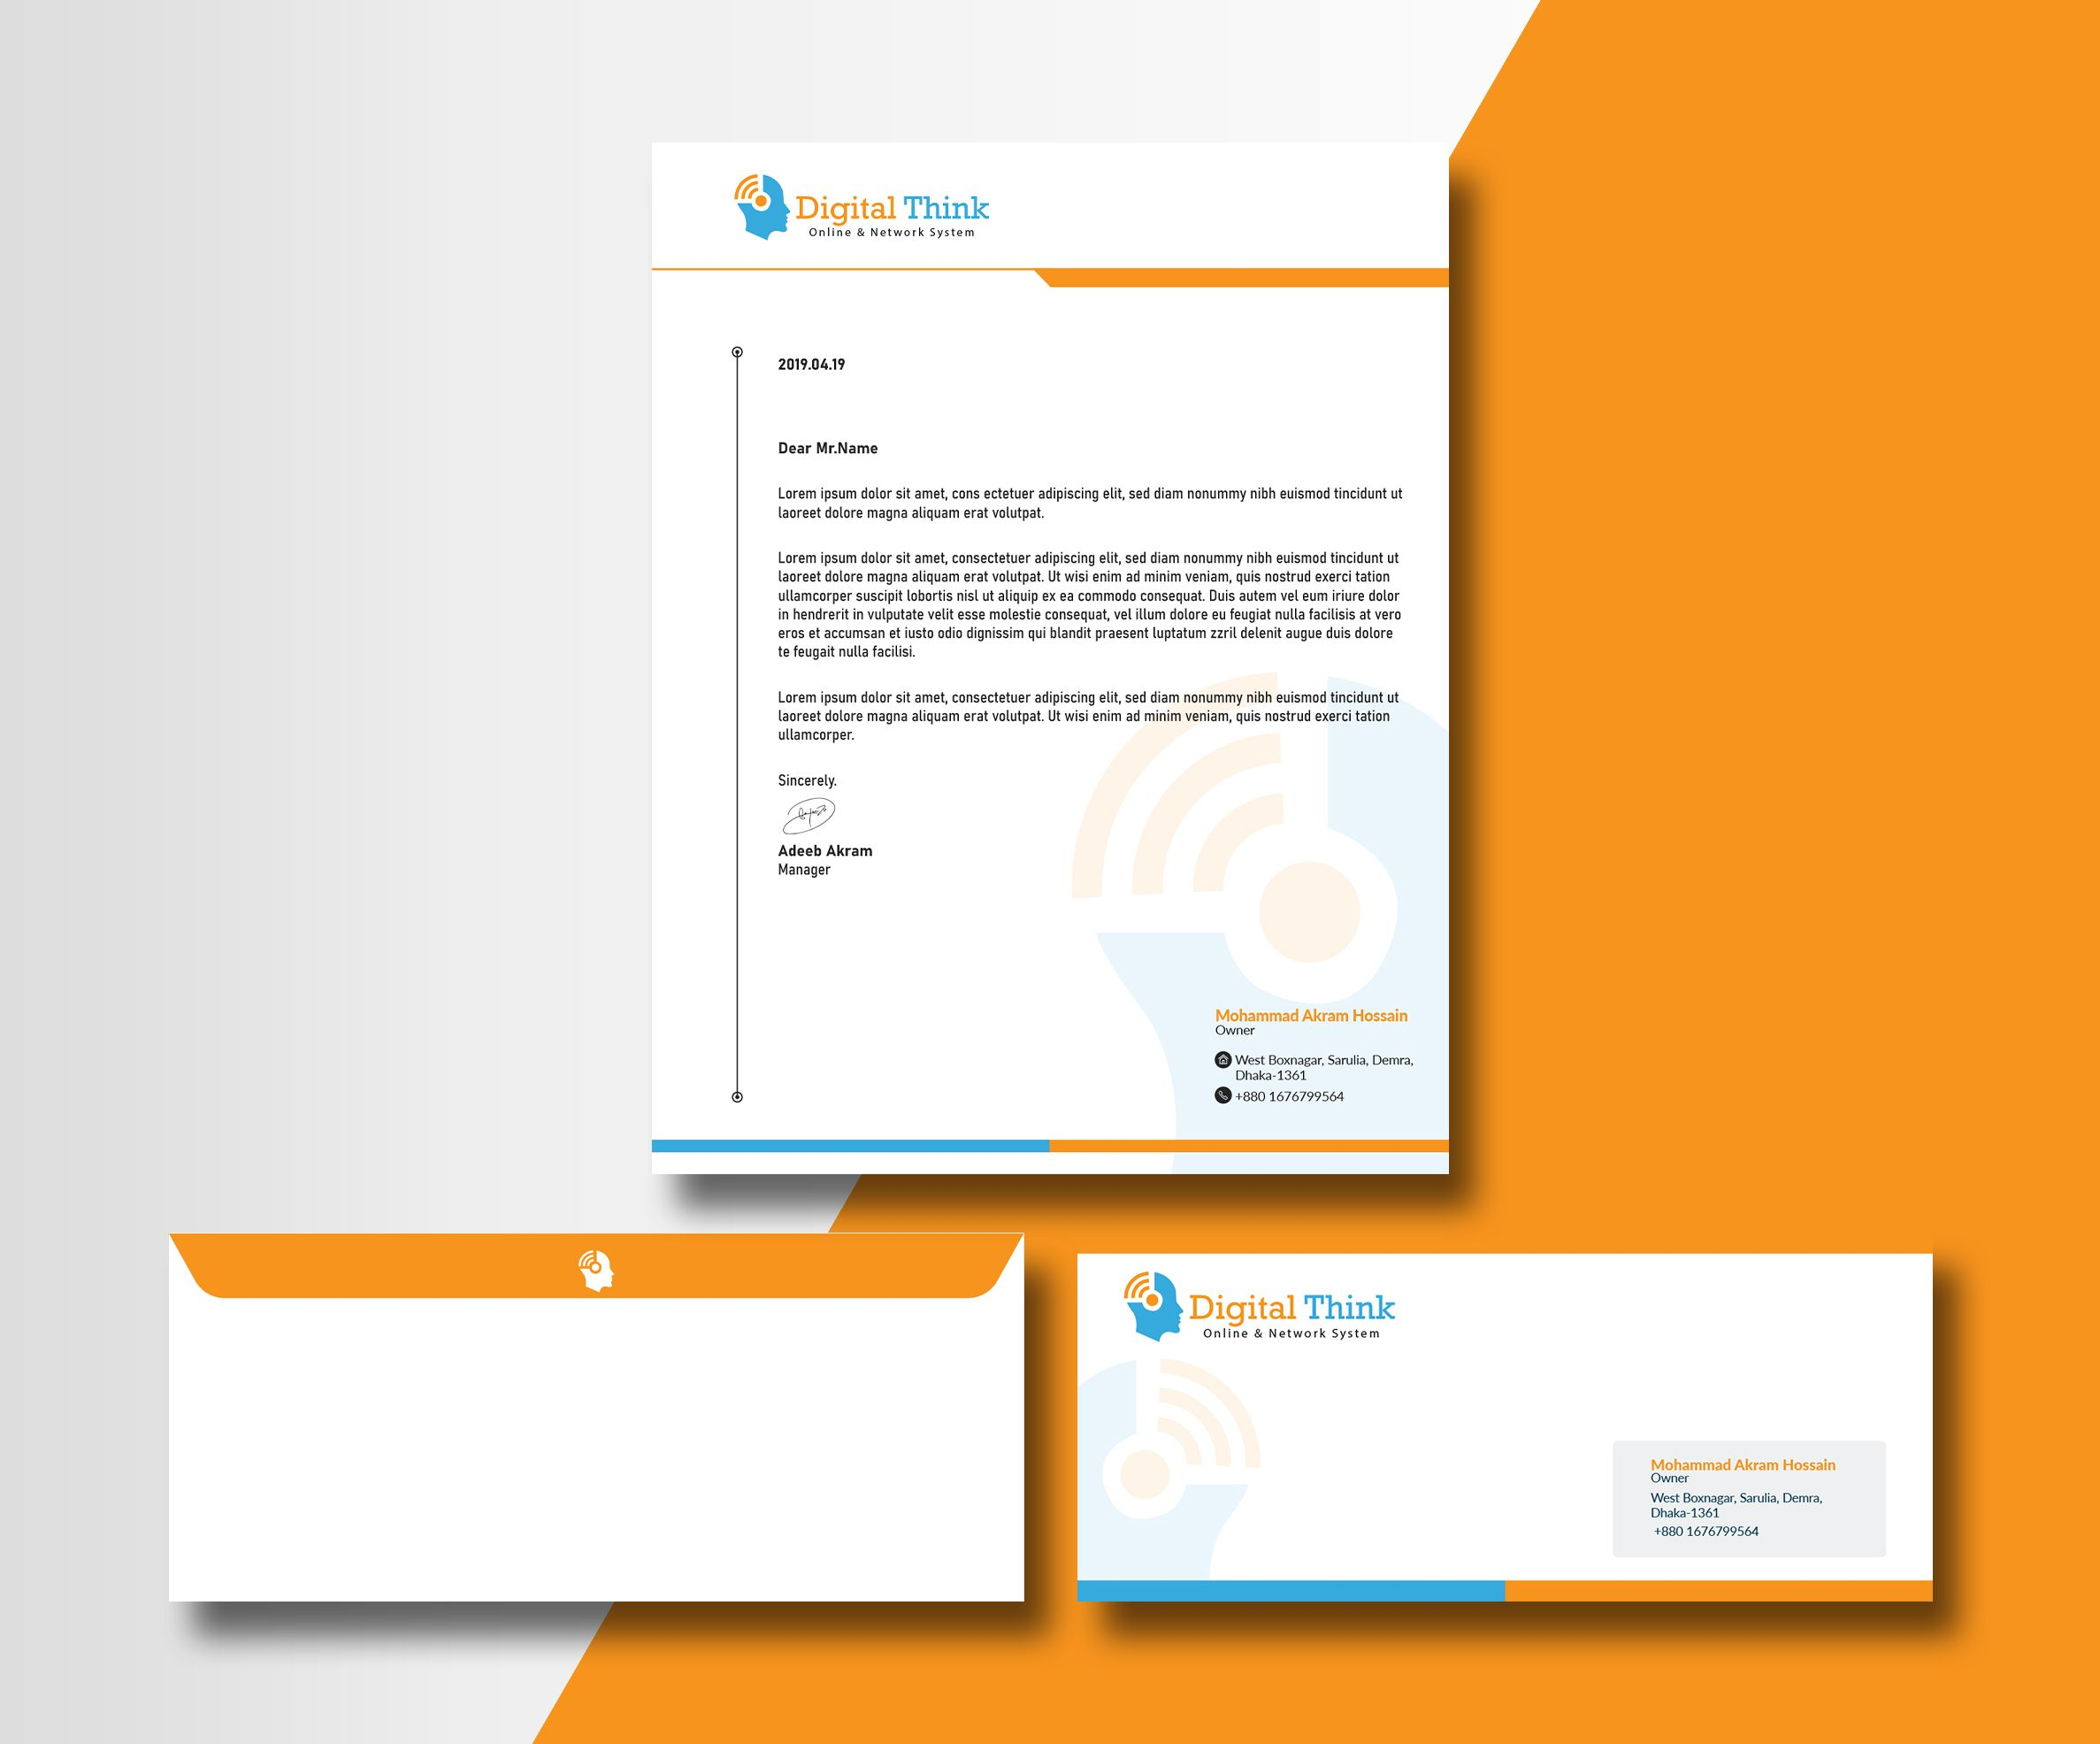 Design business card, gift card and email signature for